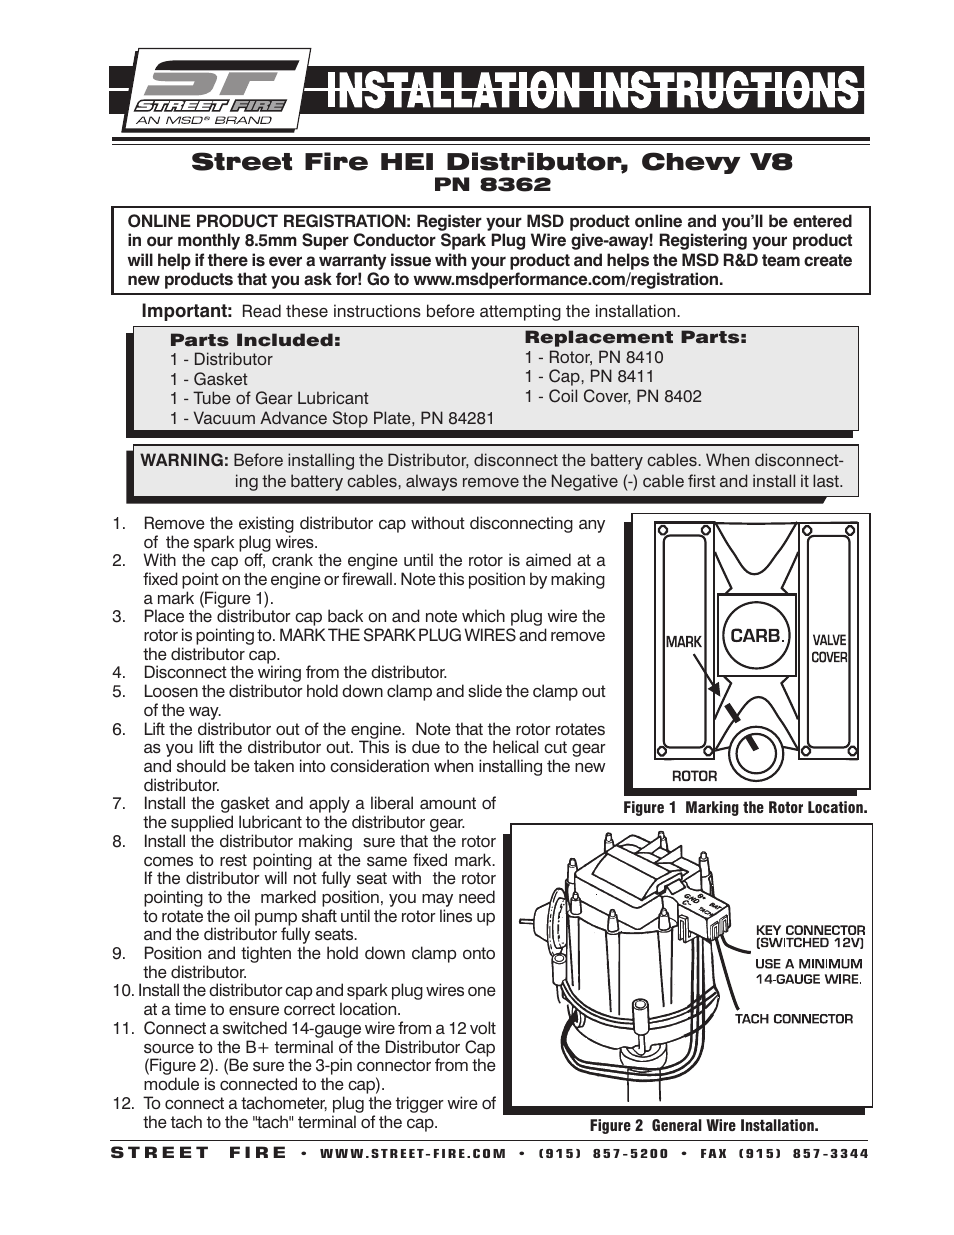 msd 8362 street fire chevrolet v8 gm hei distributor installation page1?resize\\\=665%2C861 remarkable msd 6a wiring diagram chevy hei photos wiring msd hei distributor wiring diagram at soozxer.org